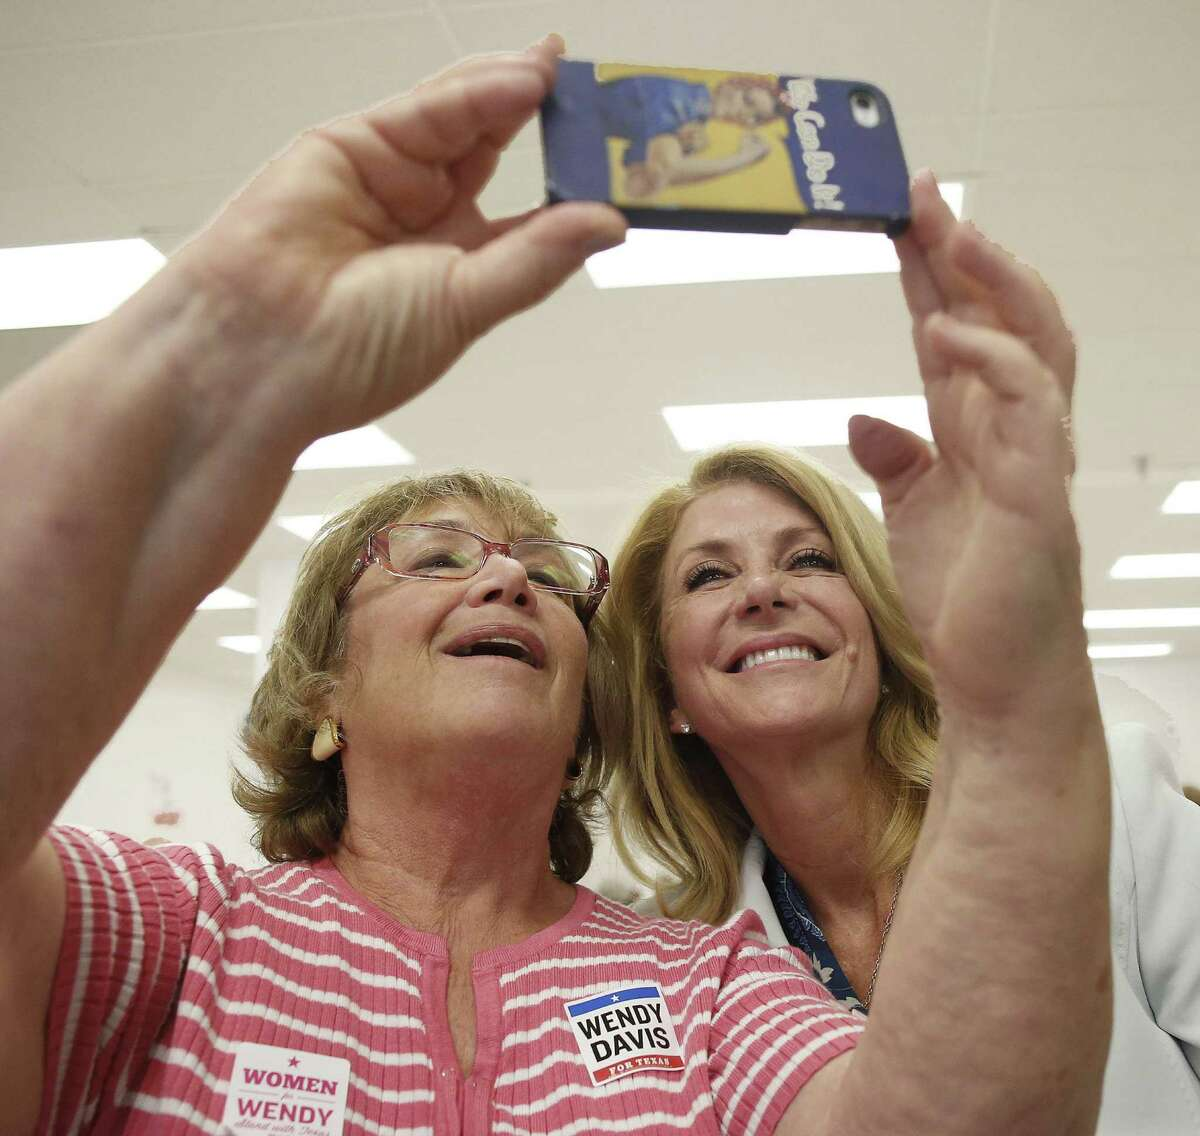 Doris Gluck, left, takes a selfie with Texas Democratic gubernatorial candidate Wendy Davis at her La Gran Plaza campaign office in Fort Worth, Texas on Tuesday, July 8, 2014. Davis spoke about Texans' right to know where hazardous chemicals are stored in their communities. (AP Photo/Fort Worth Star-Telegram, Ron T. Ennis)